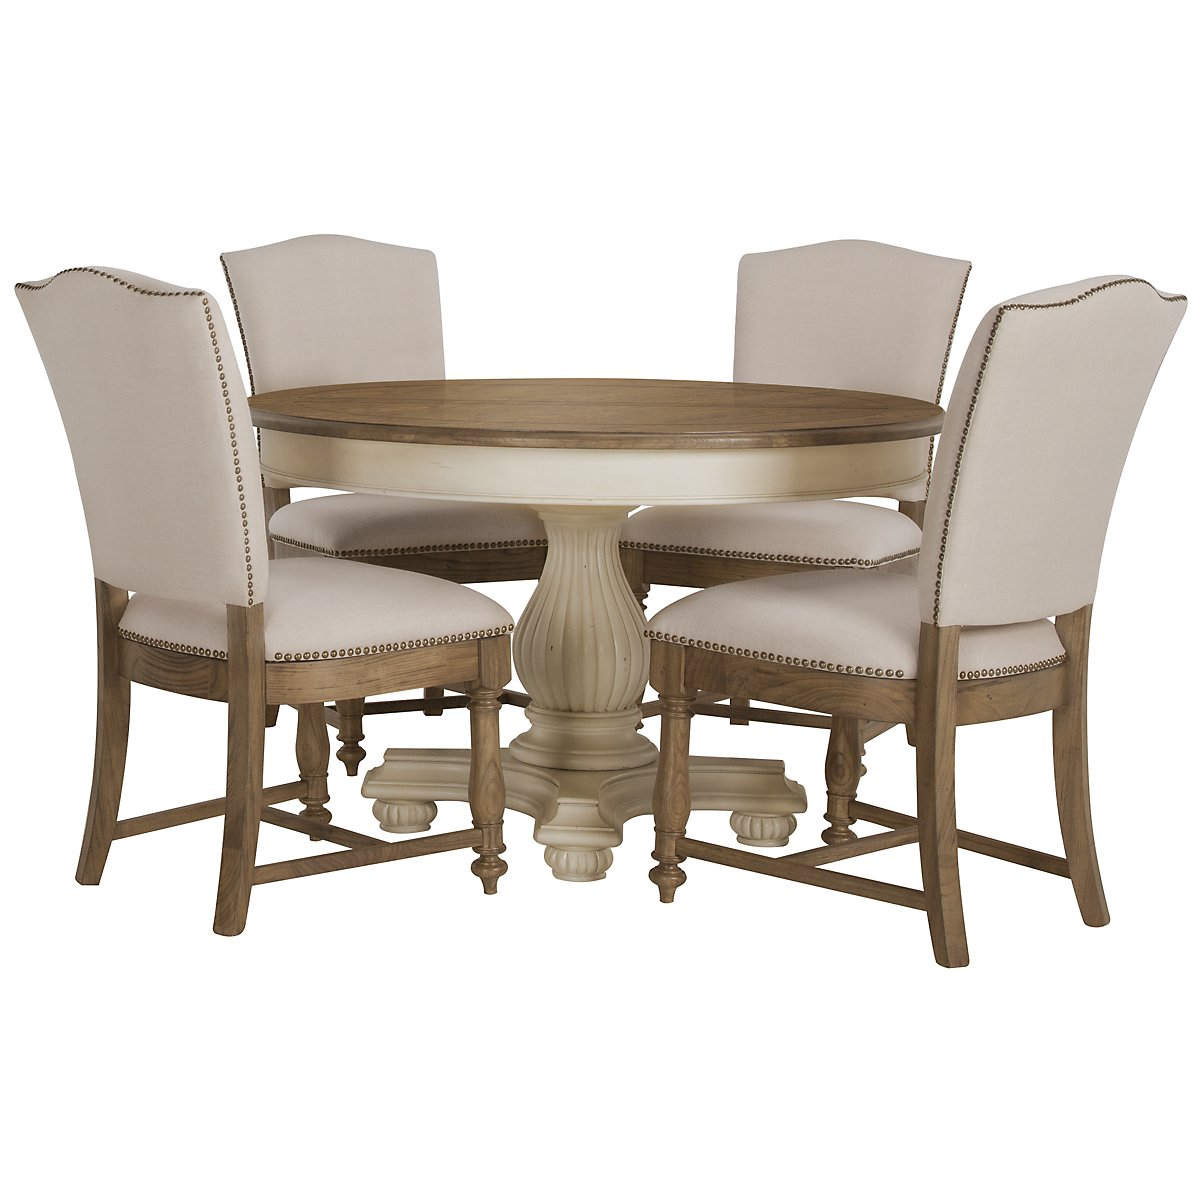 City furniture coventry two tone round table 4 for Dining room tables 0 finance